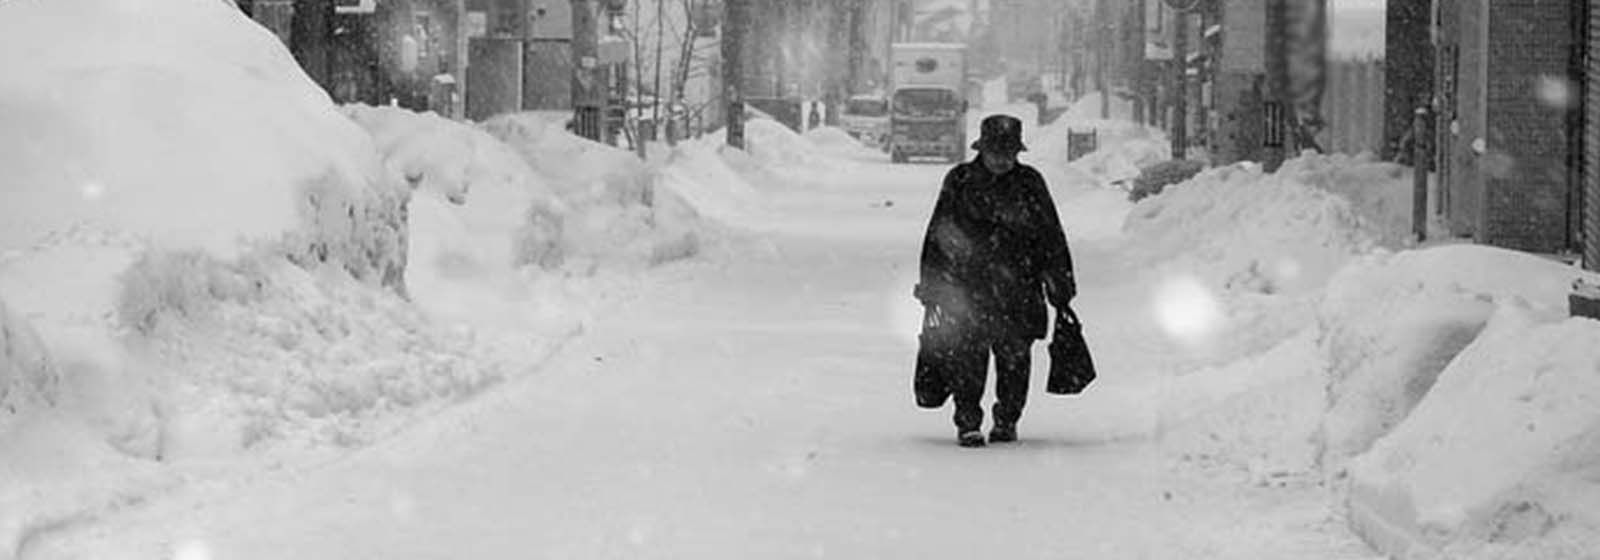 Brace yourself: A colder winter is coming